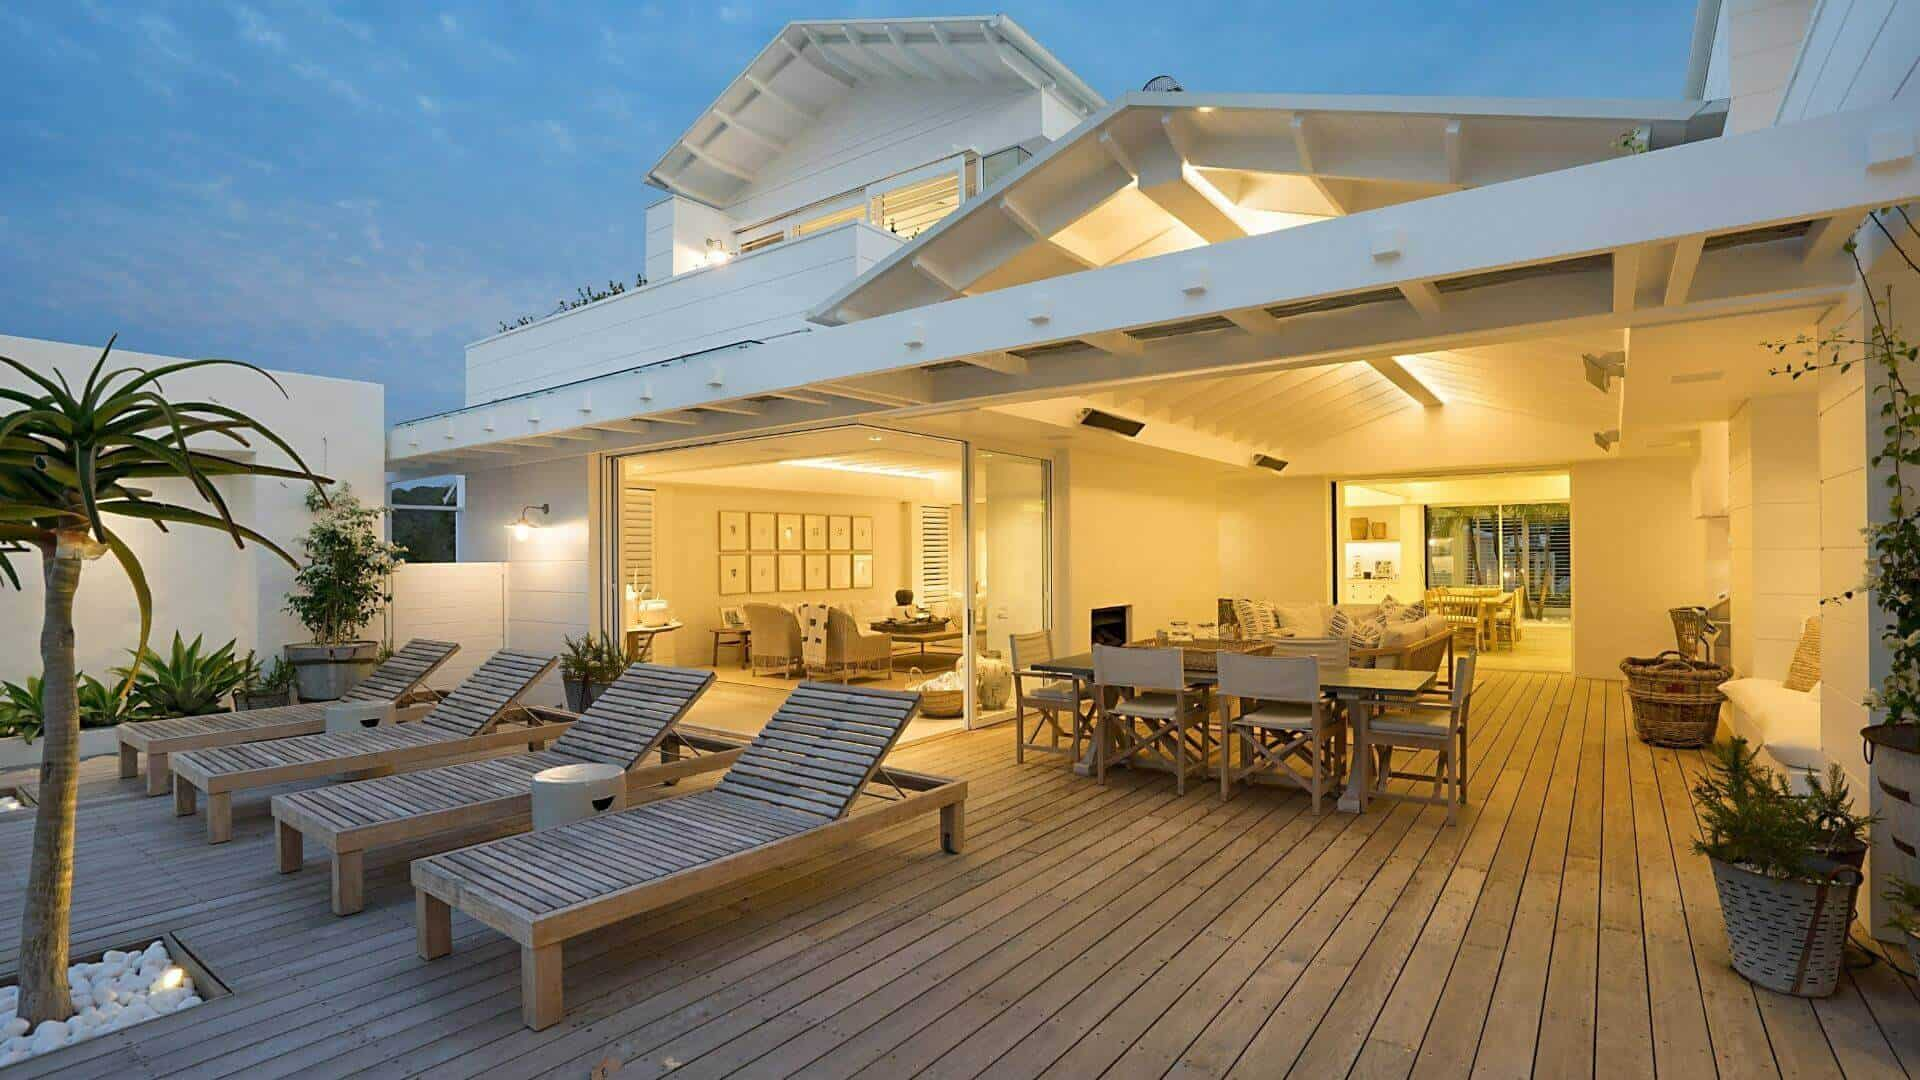 What You Should Know Before Building Your Wood Deck